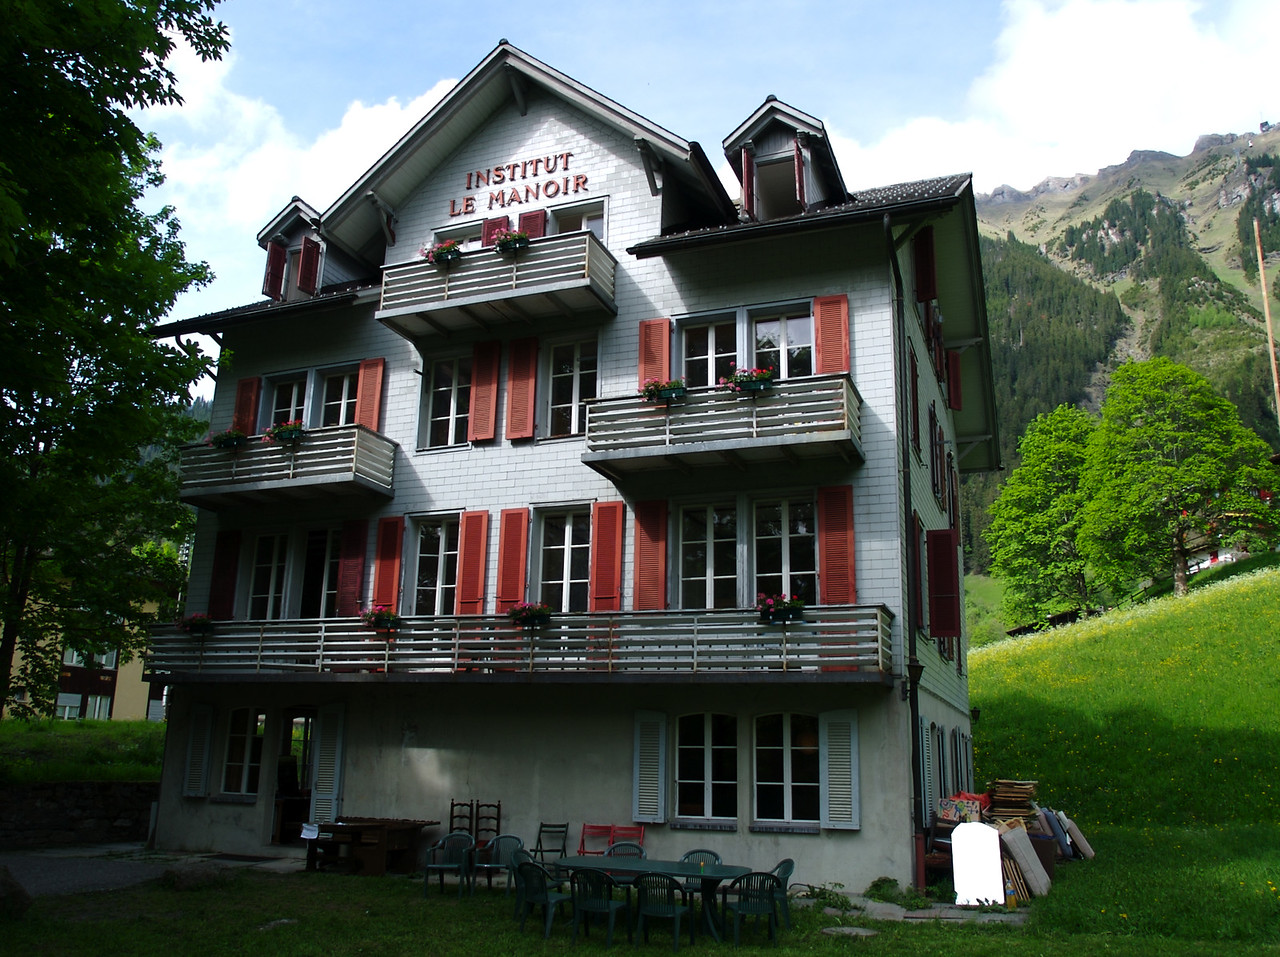 """29th May 2006 - Our accomodation in Wengen, well worth a look<br /> <br /> Many Many thanks to Angela and Christian (Angela is a very good friend of Trude my sister). We stayed with them at their new location, thankfully it is only a 100 Meters from the train station. If you are thinking of a holiday in Wengen and want good value accomodation then go to  <a href=""""http://www.old-lodge.ch"""">http://www.old-lodge.ch</a> or call them on +41 78 745 58 50"""